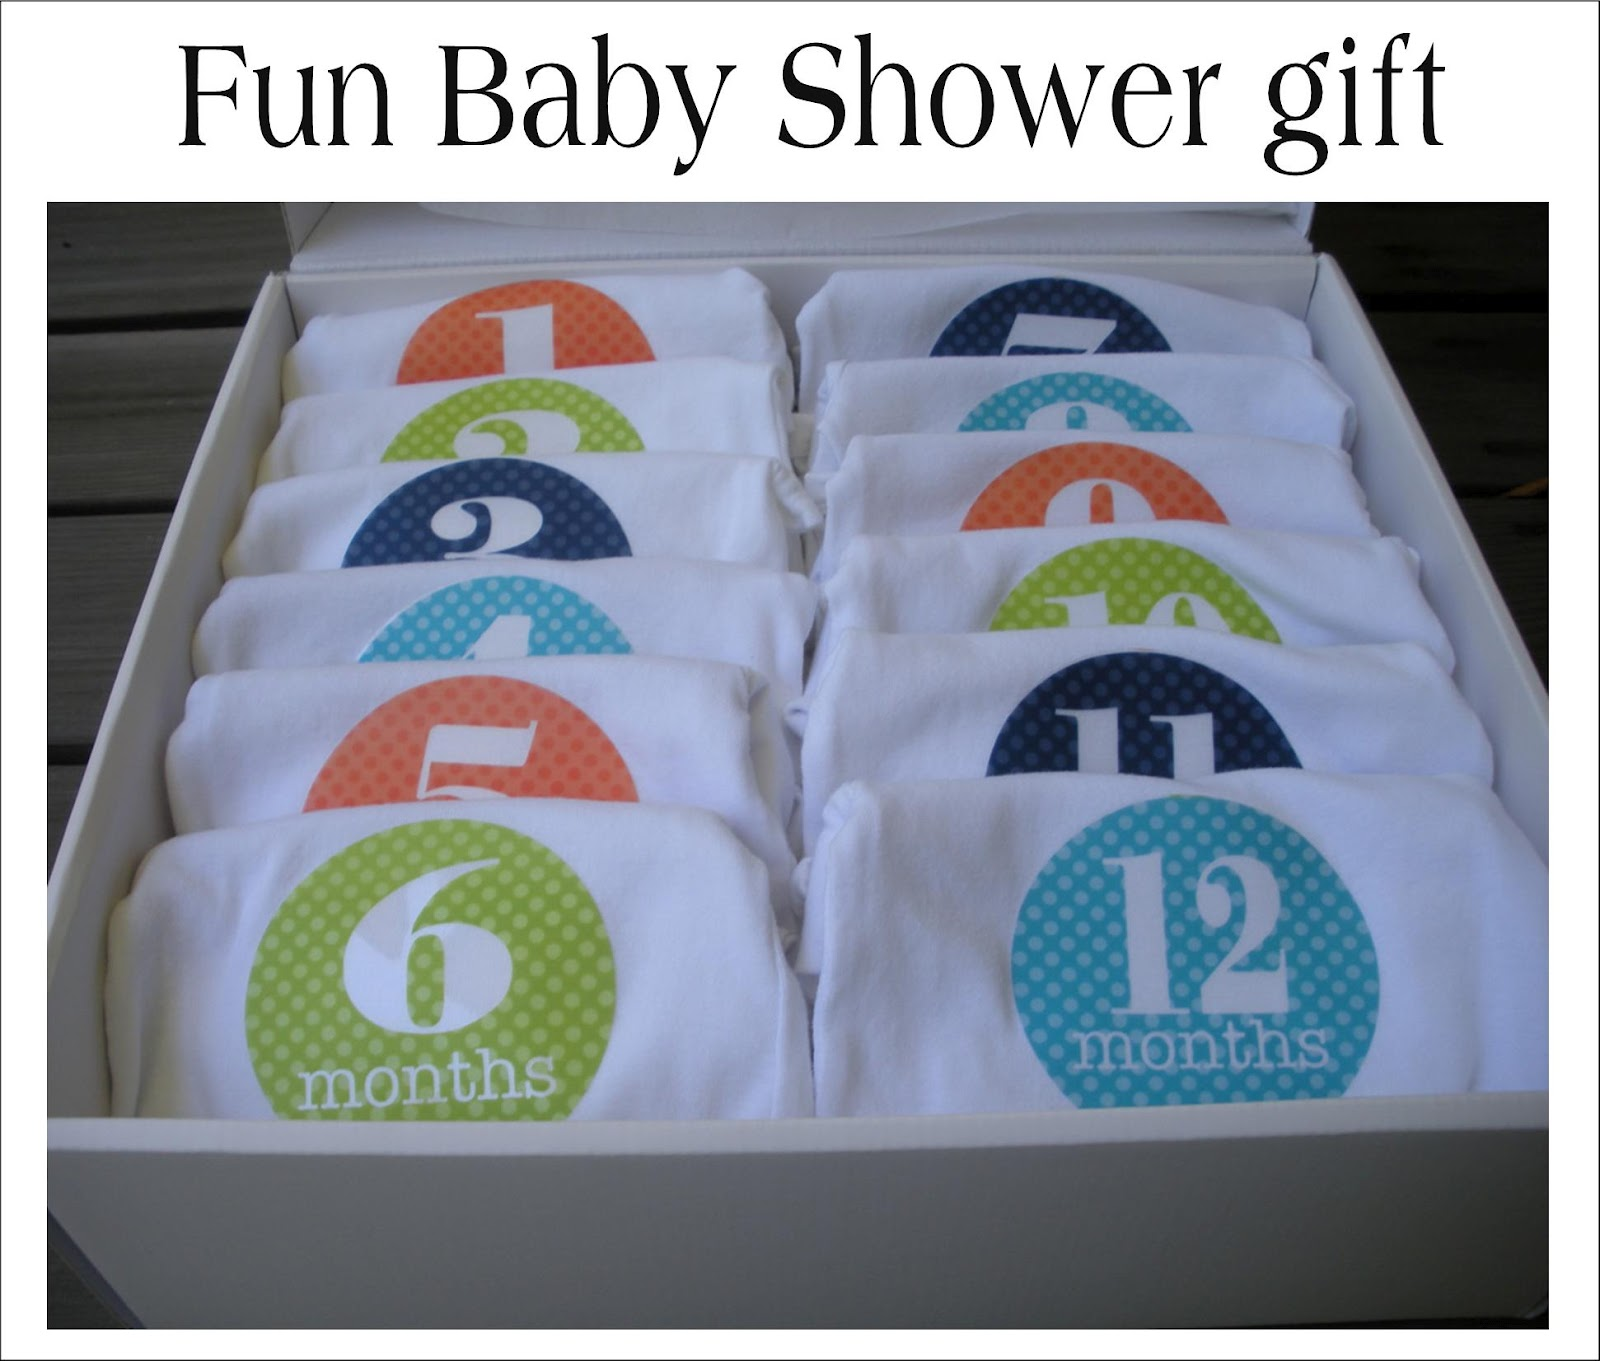 me shower baby diabetesmang for gifts twins info presents ideas best geneslove good gift